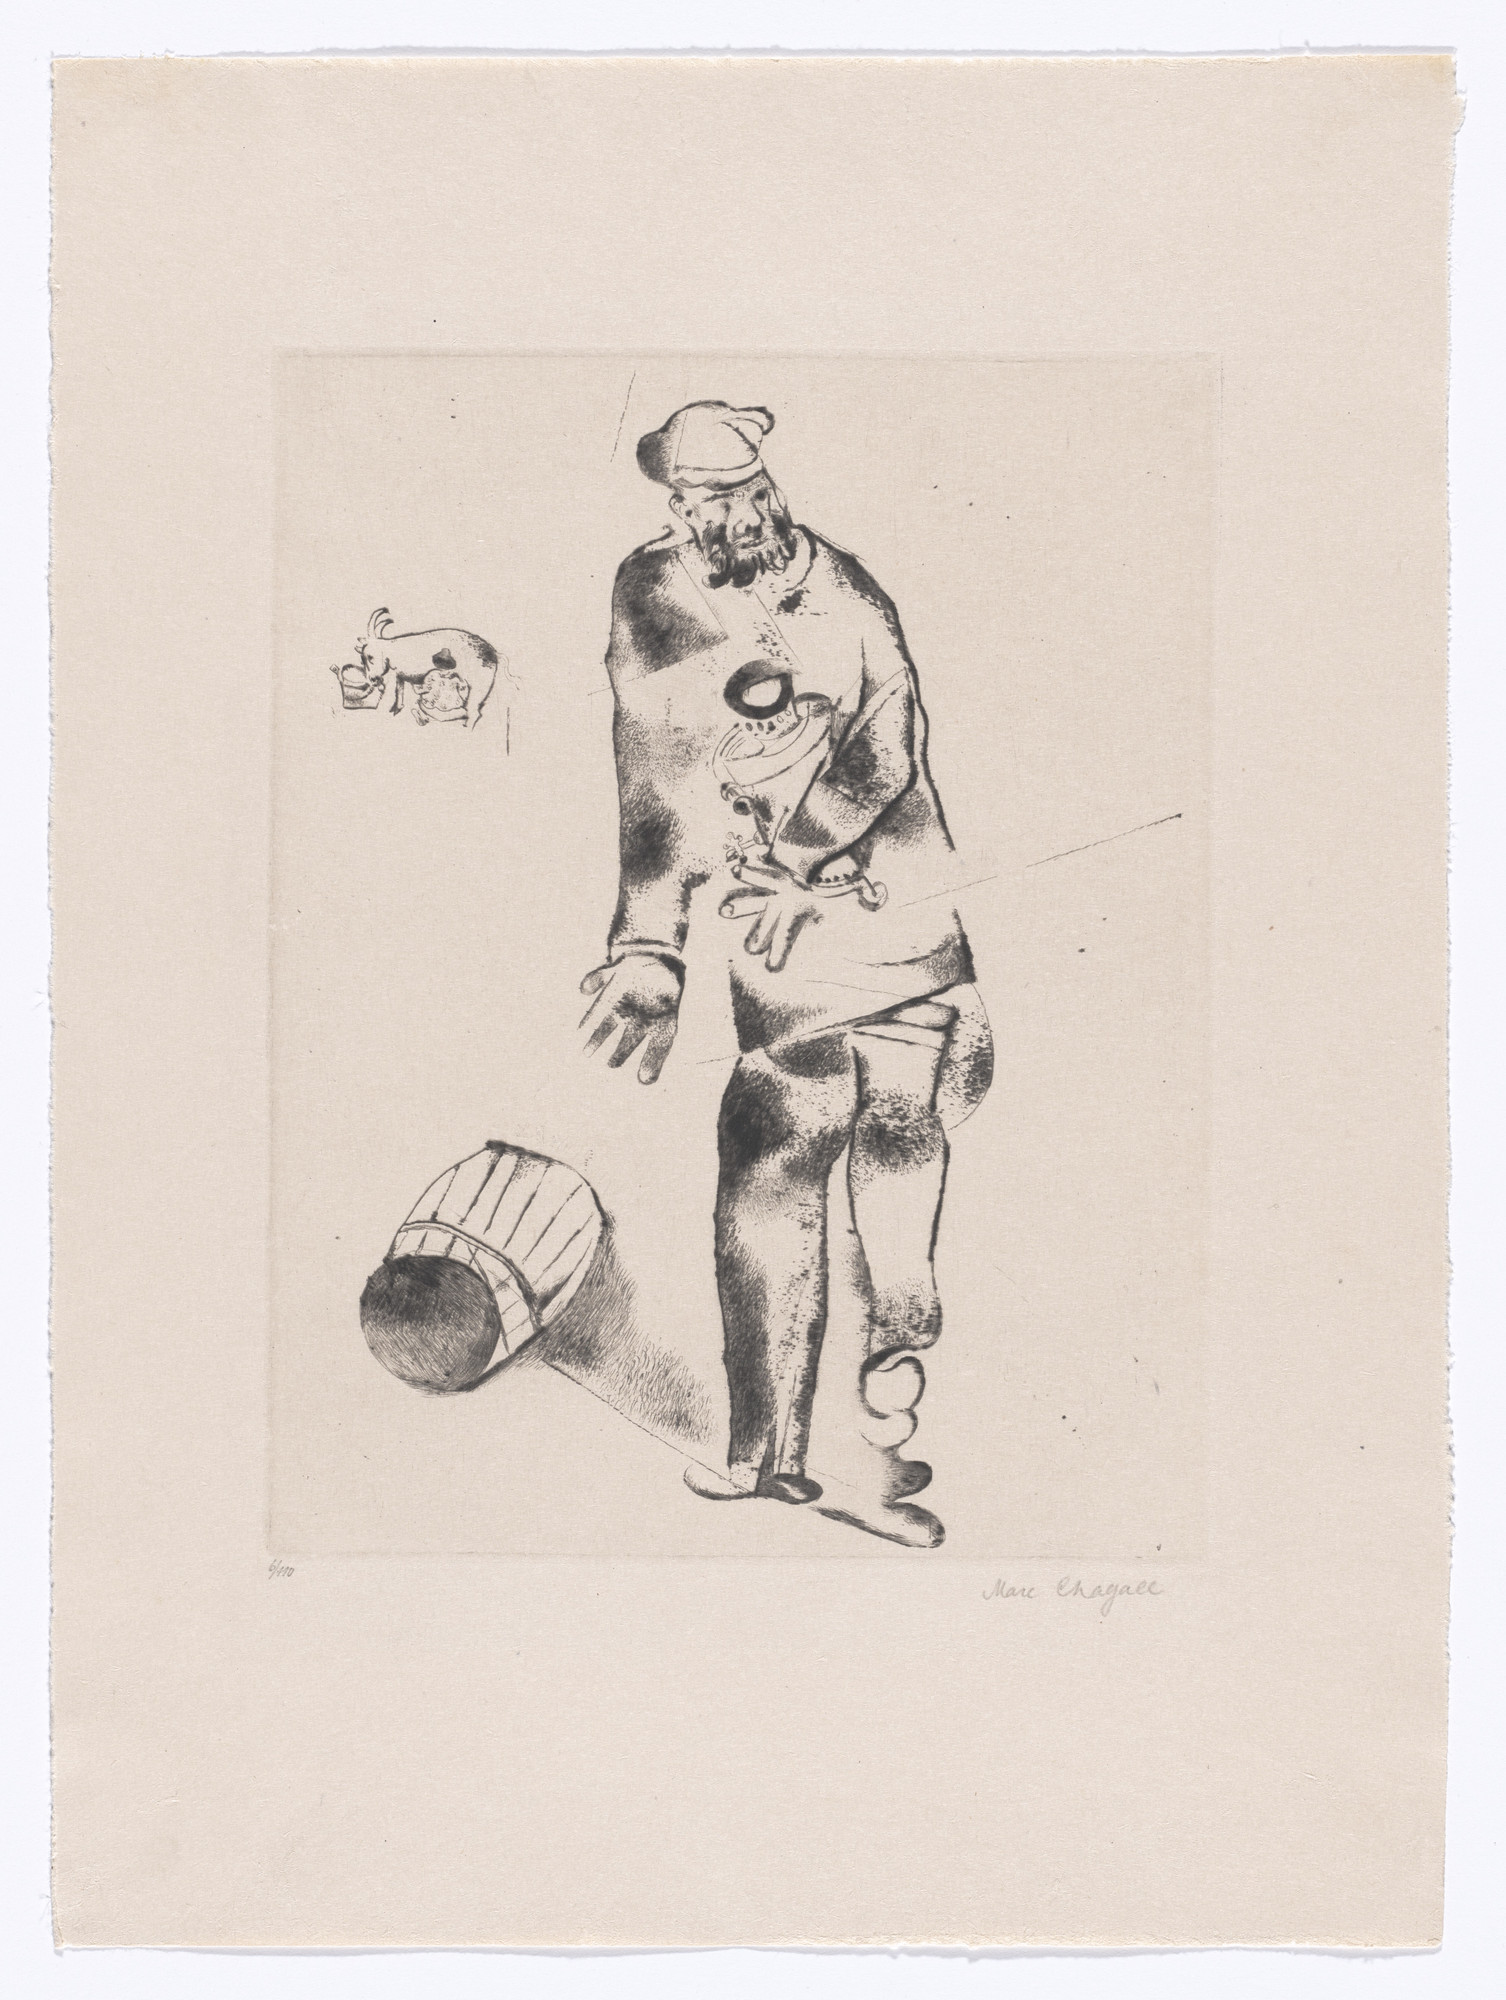 Marc Chagall. The Father (Der Vater) from My Life (Mein Leben). 1922, published 1923